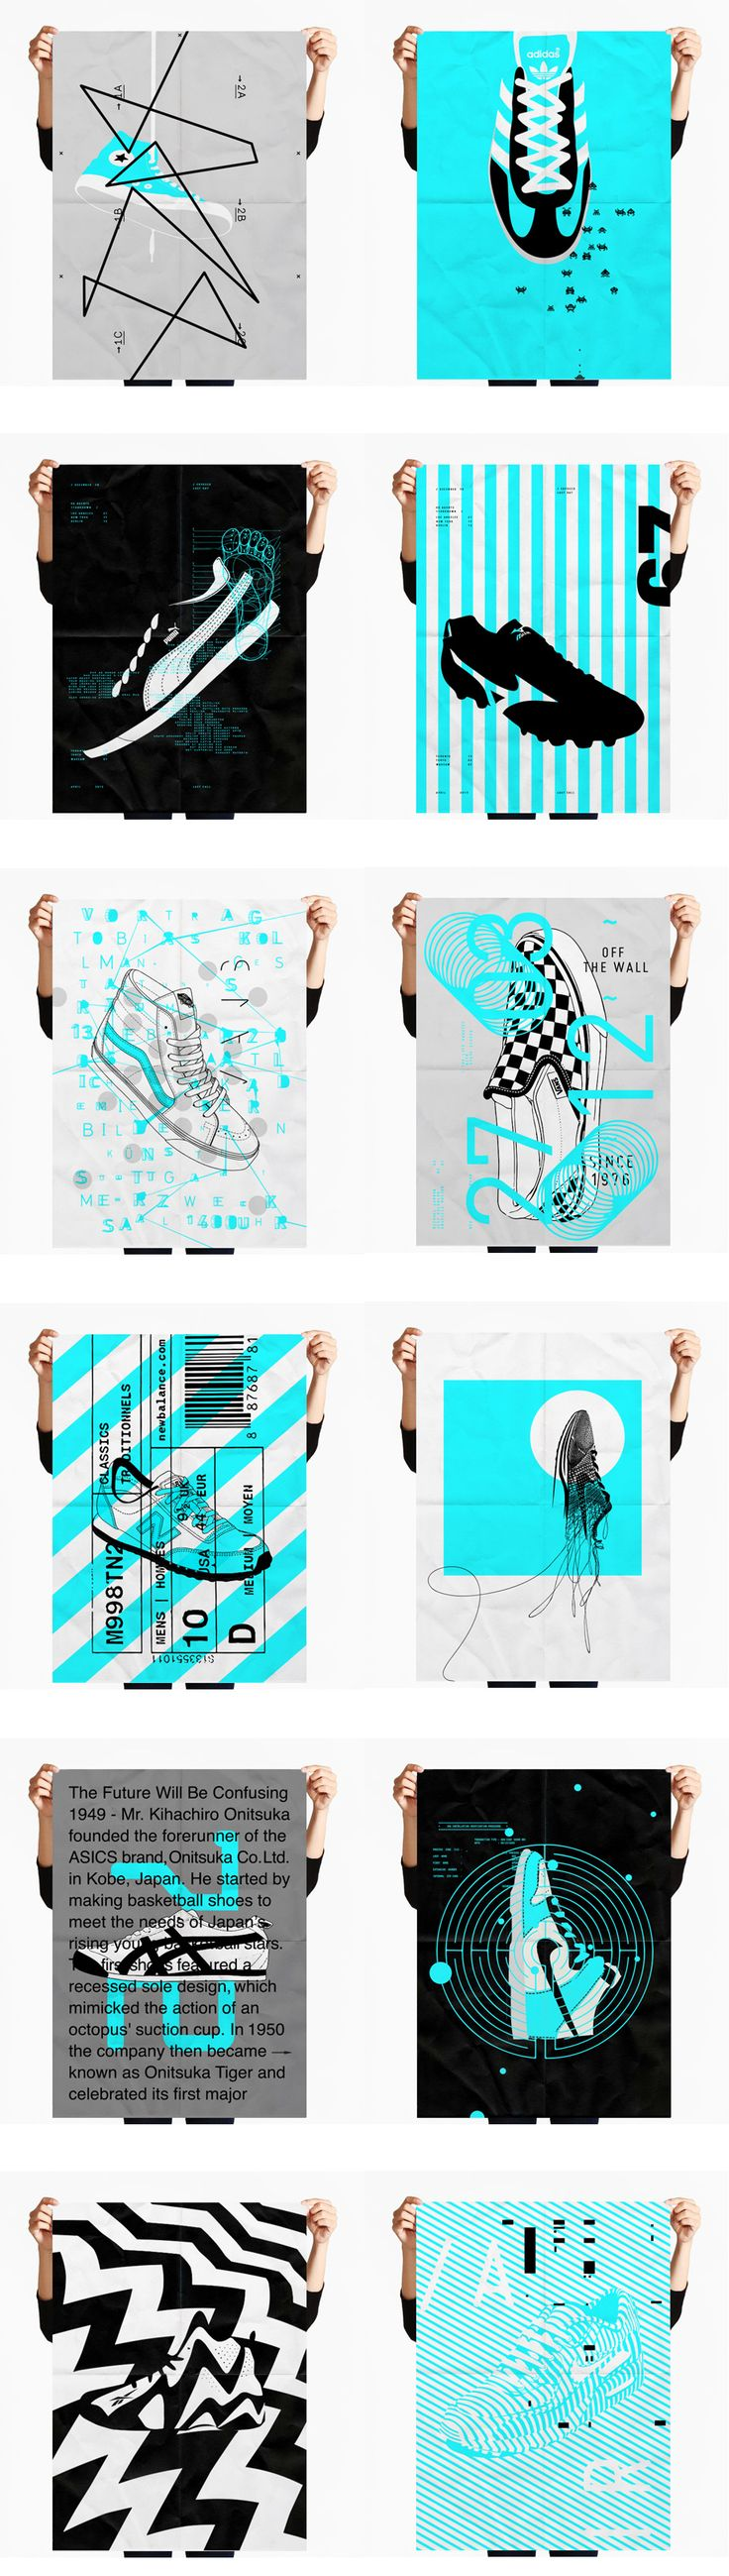 Design poster the best - Personal Project Screen Printing Sneakers Poster Series